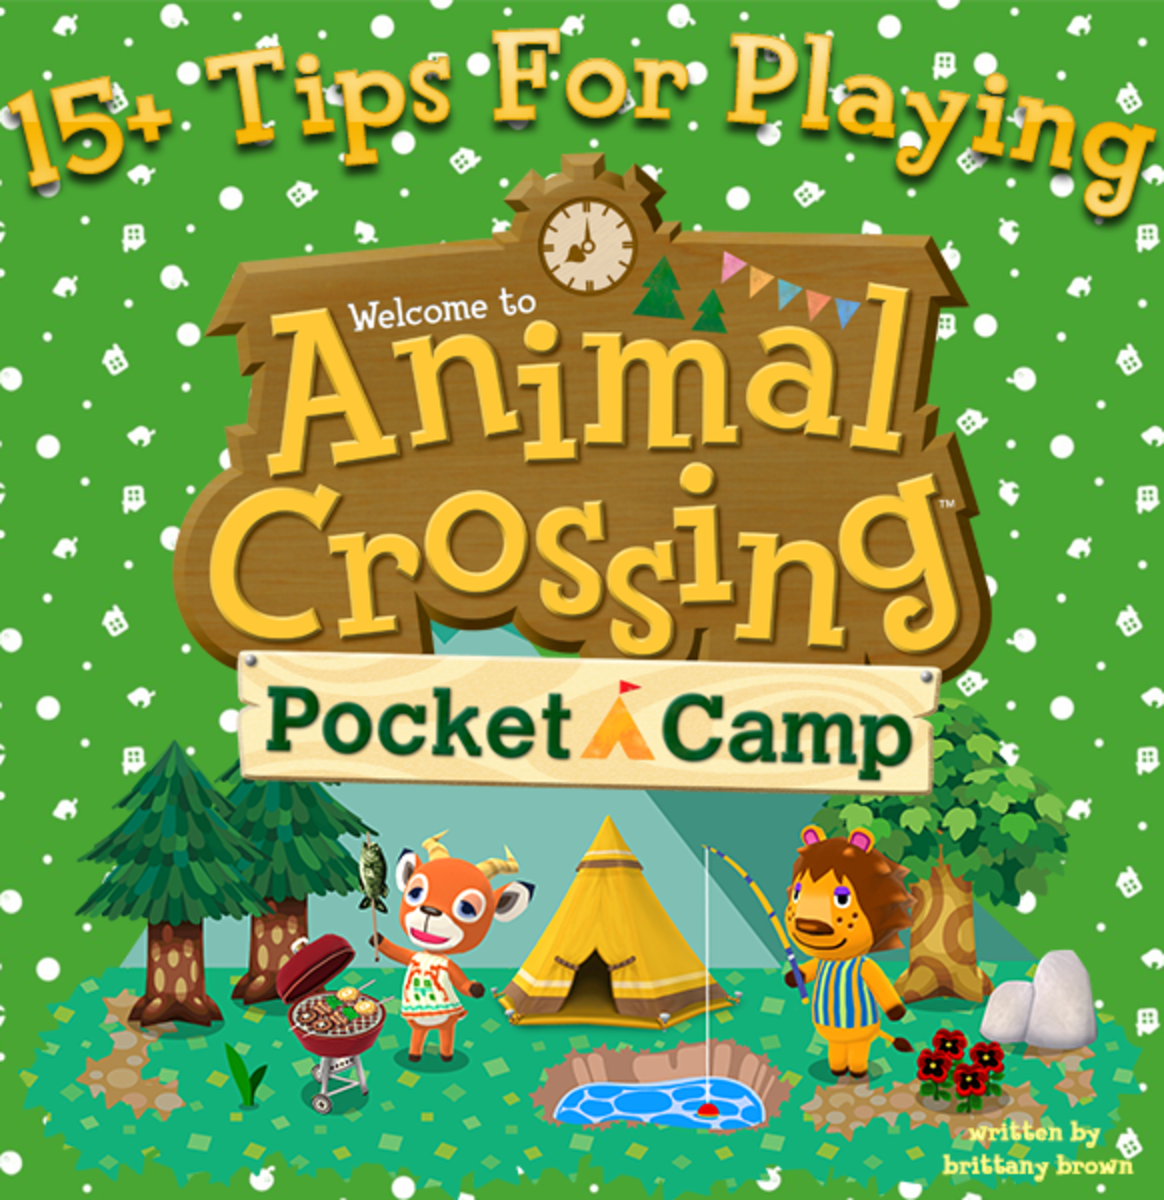 15+ tips, tricks, cheats and hints for playing Animal Crossing Pocket Camp!